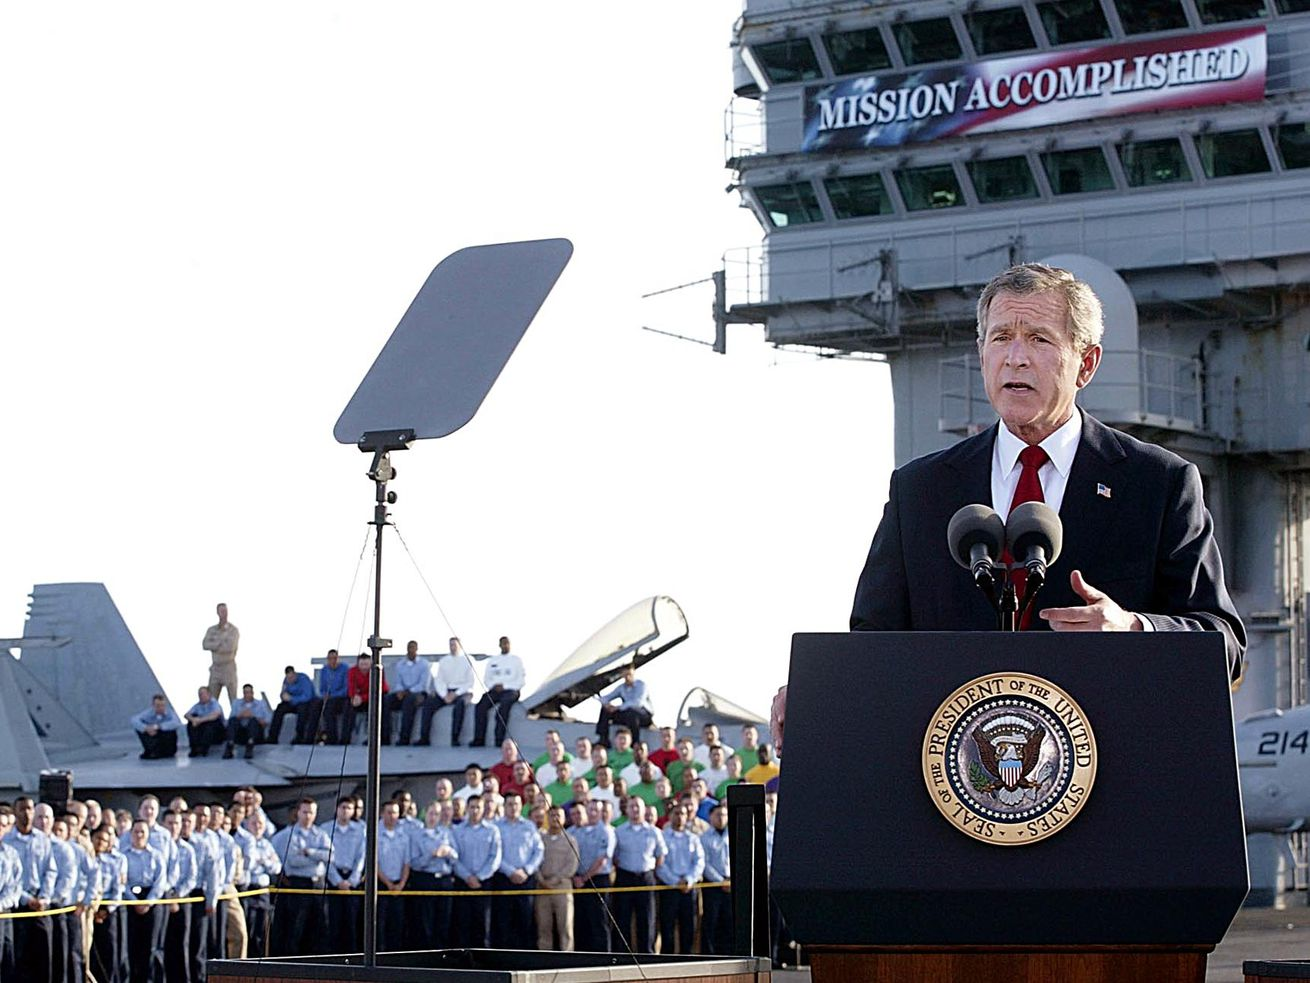 Former President George W. Bush addresses the nation aboard the nuclear aircraft carrier USS Abraham Lincoln May 1, 2003, as it sails for Naval Air Station North Island, San Diego, California.